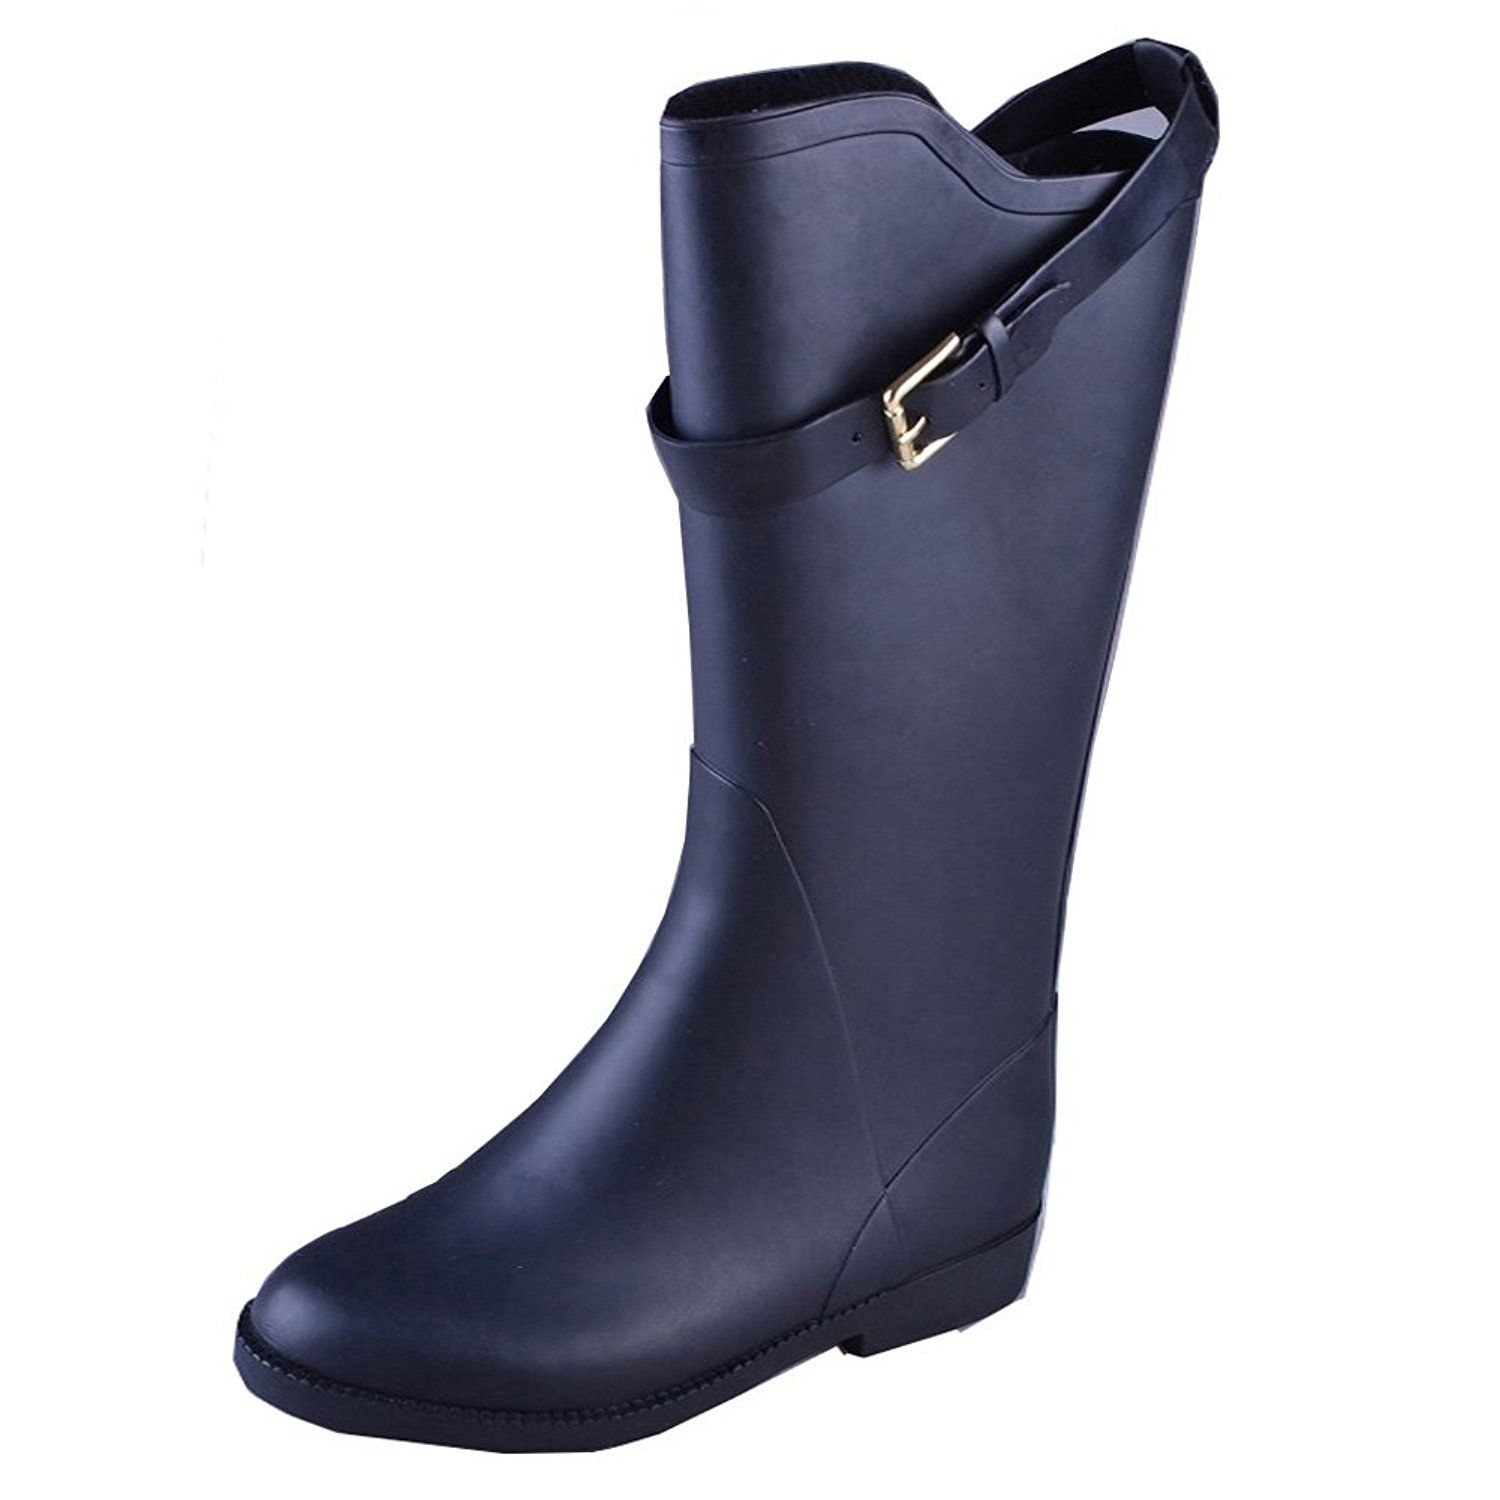 VICVIK Women's Classic Rubber Rain Boot With Buckle *** You can get additional details at the image link.